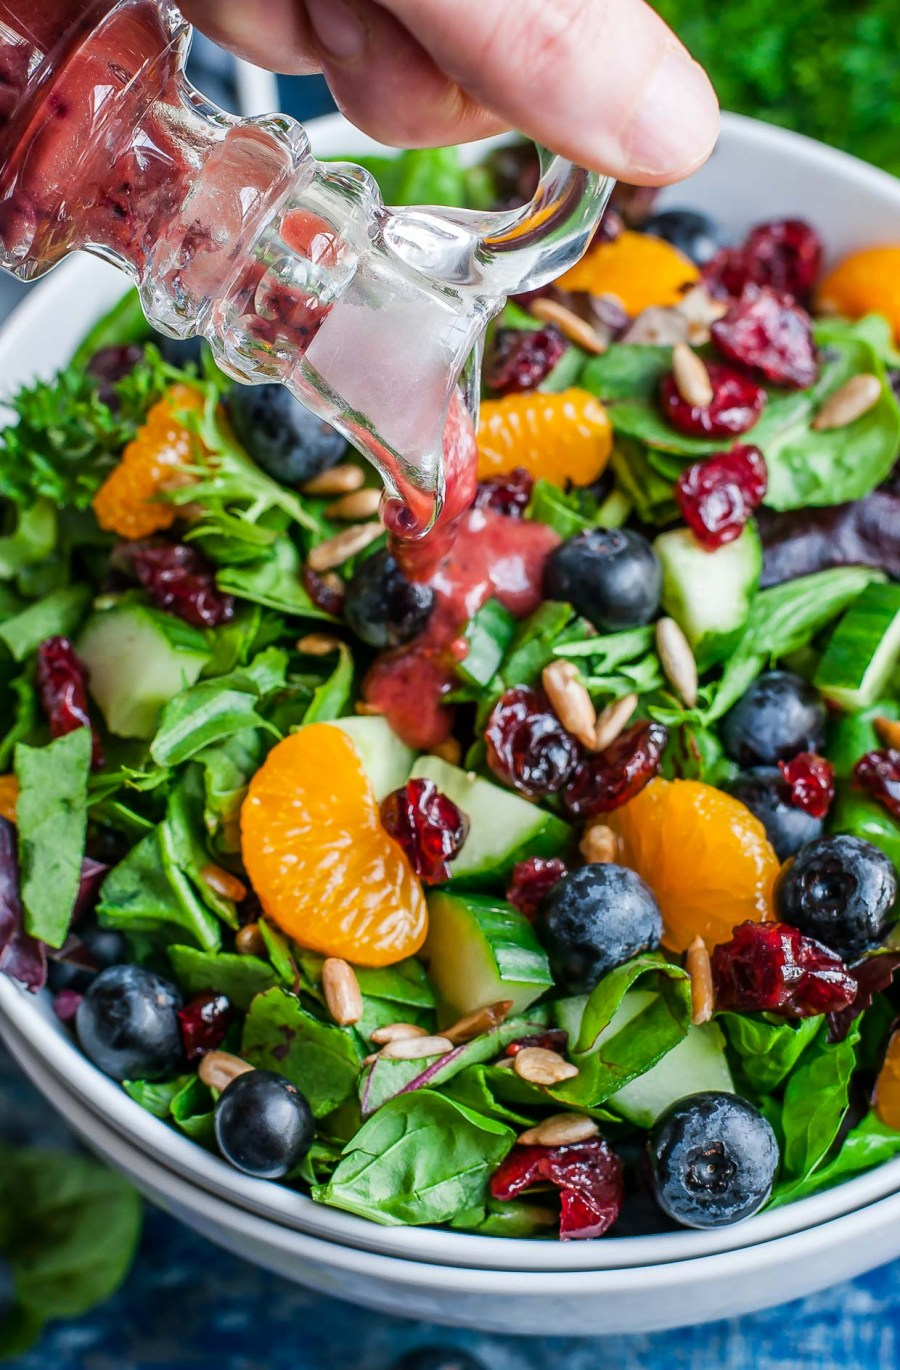 Pouring Balsamic Blueberry Salad Dressing on Salad